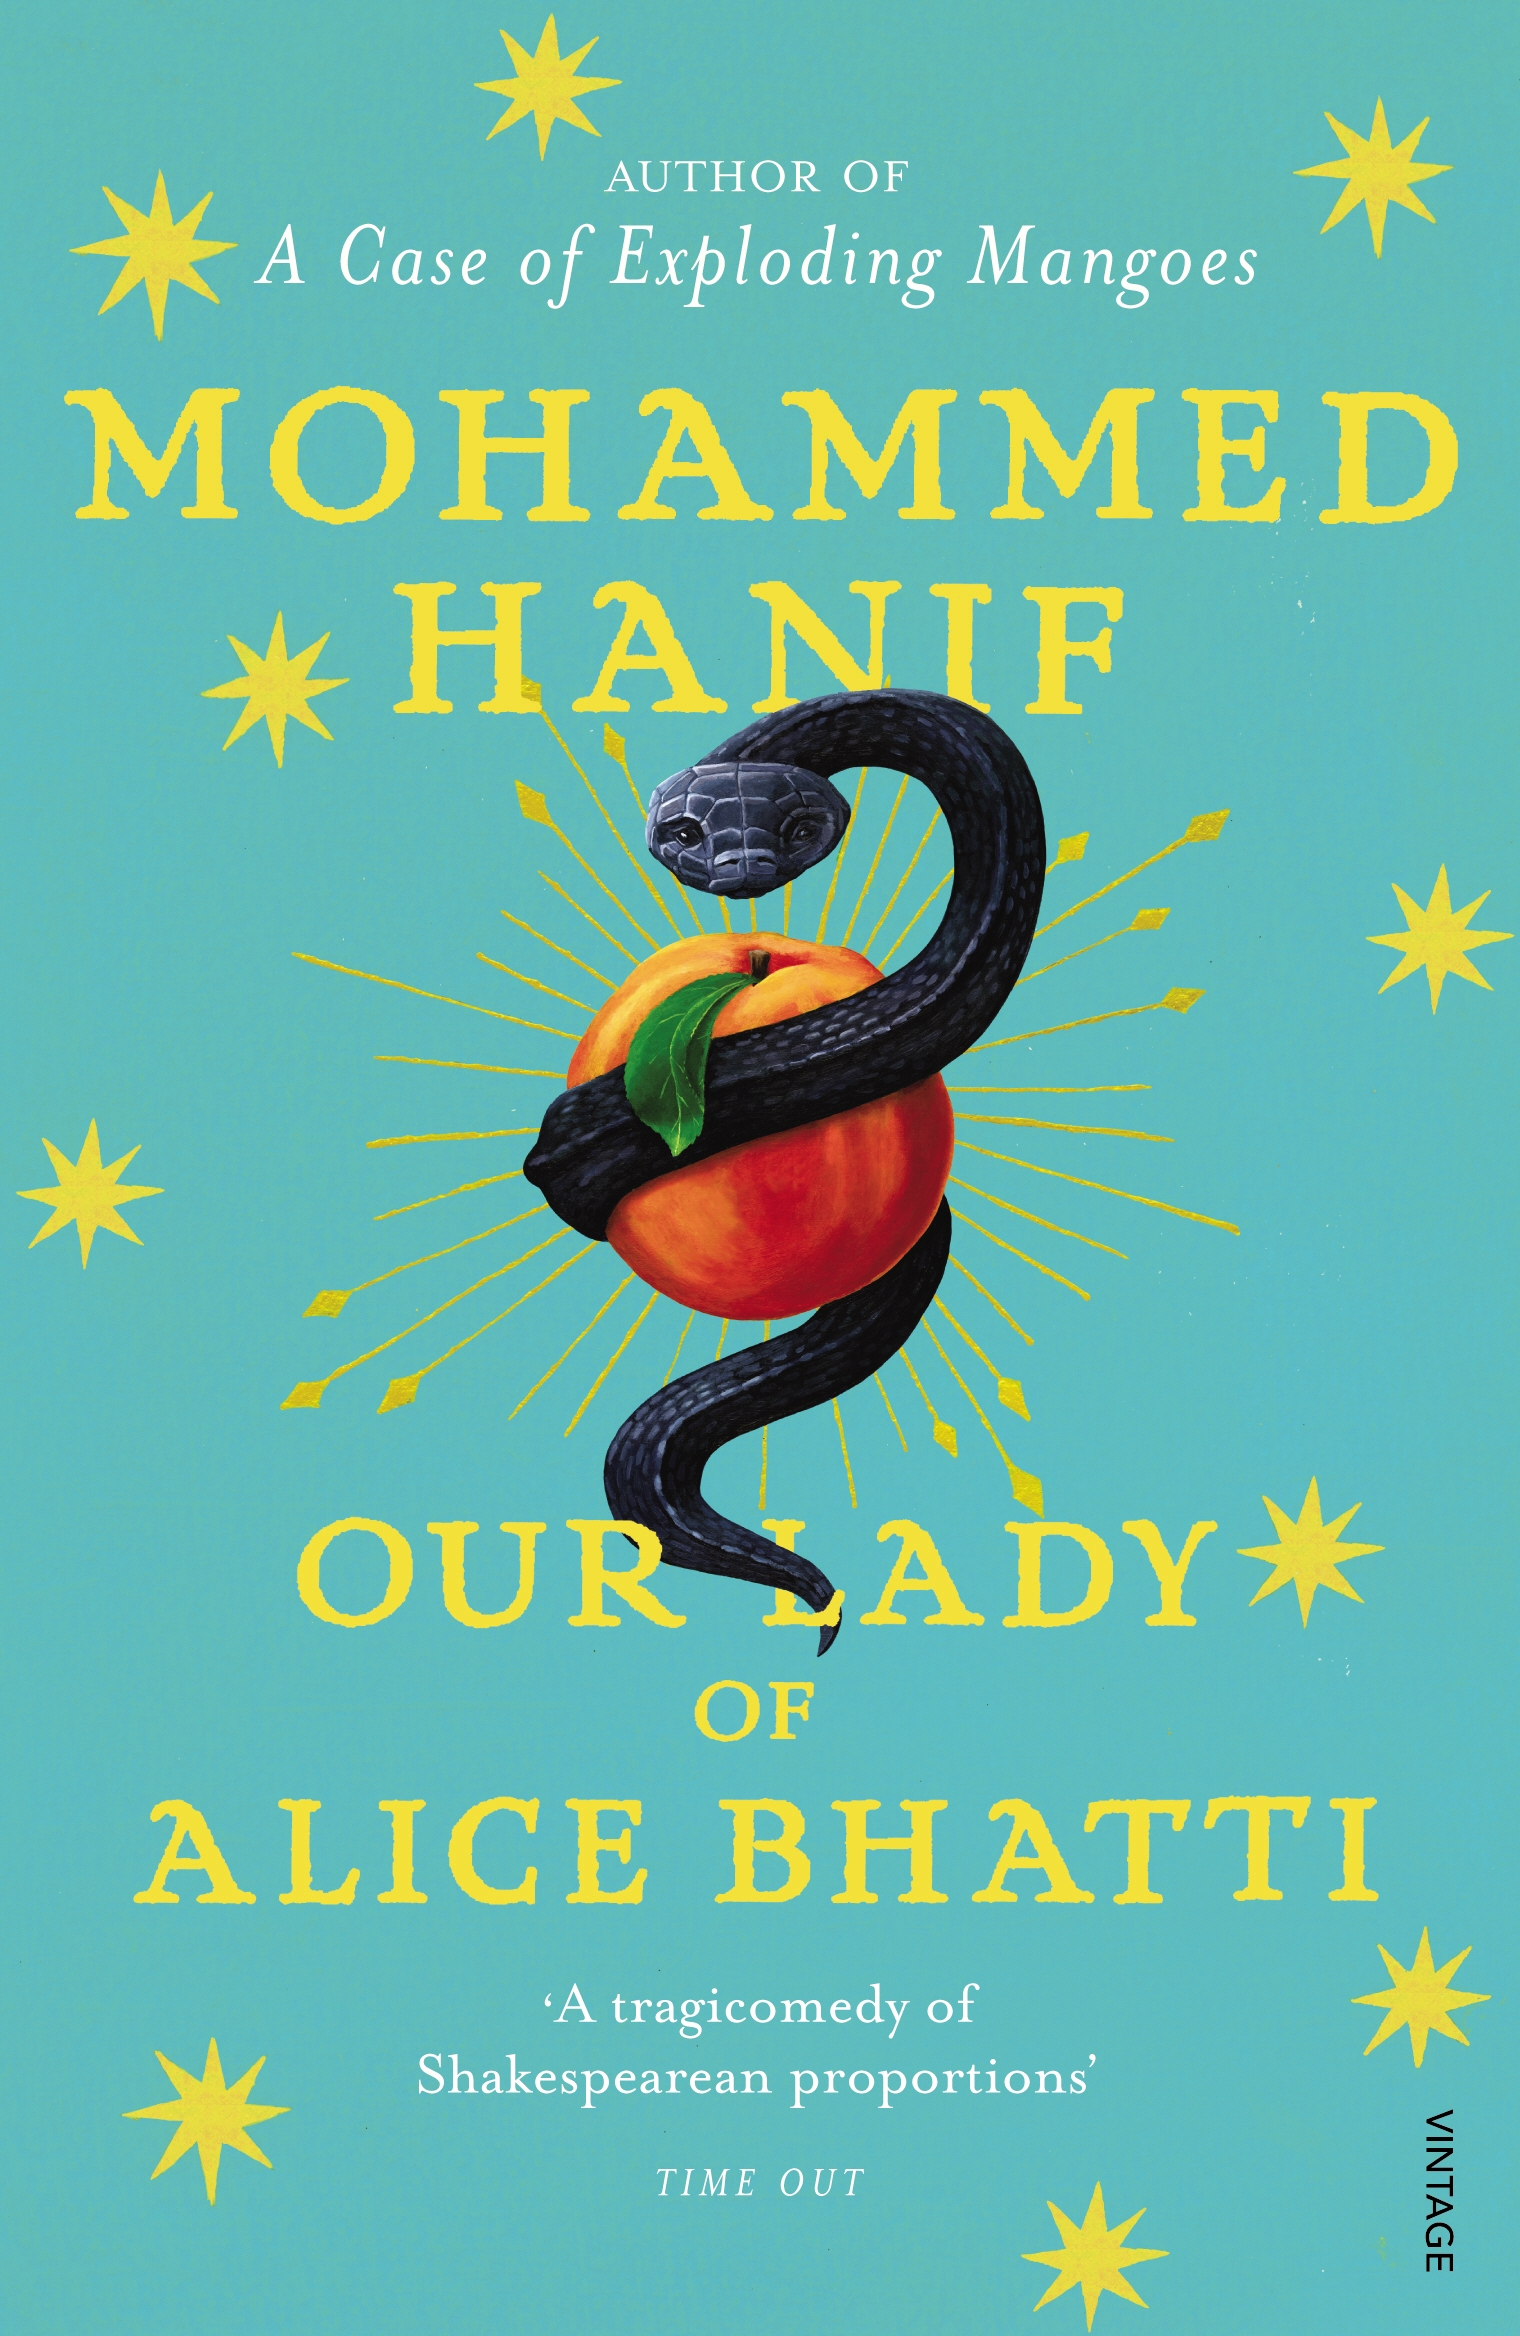 our lady of alice bhatti summary